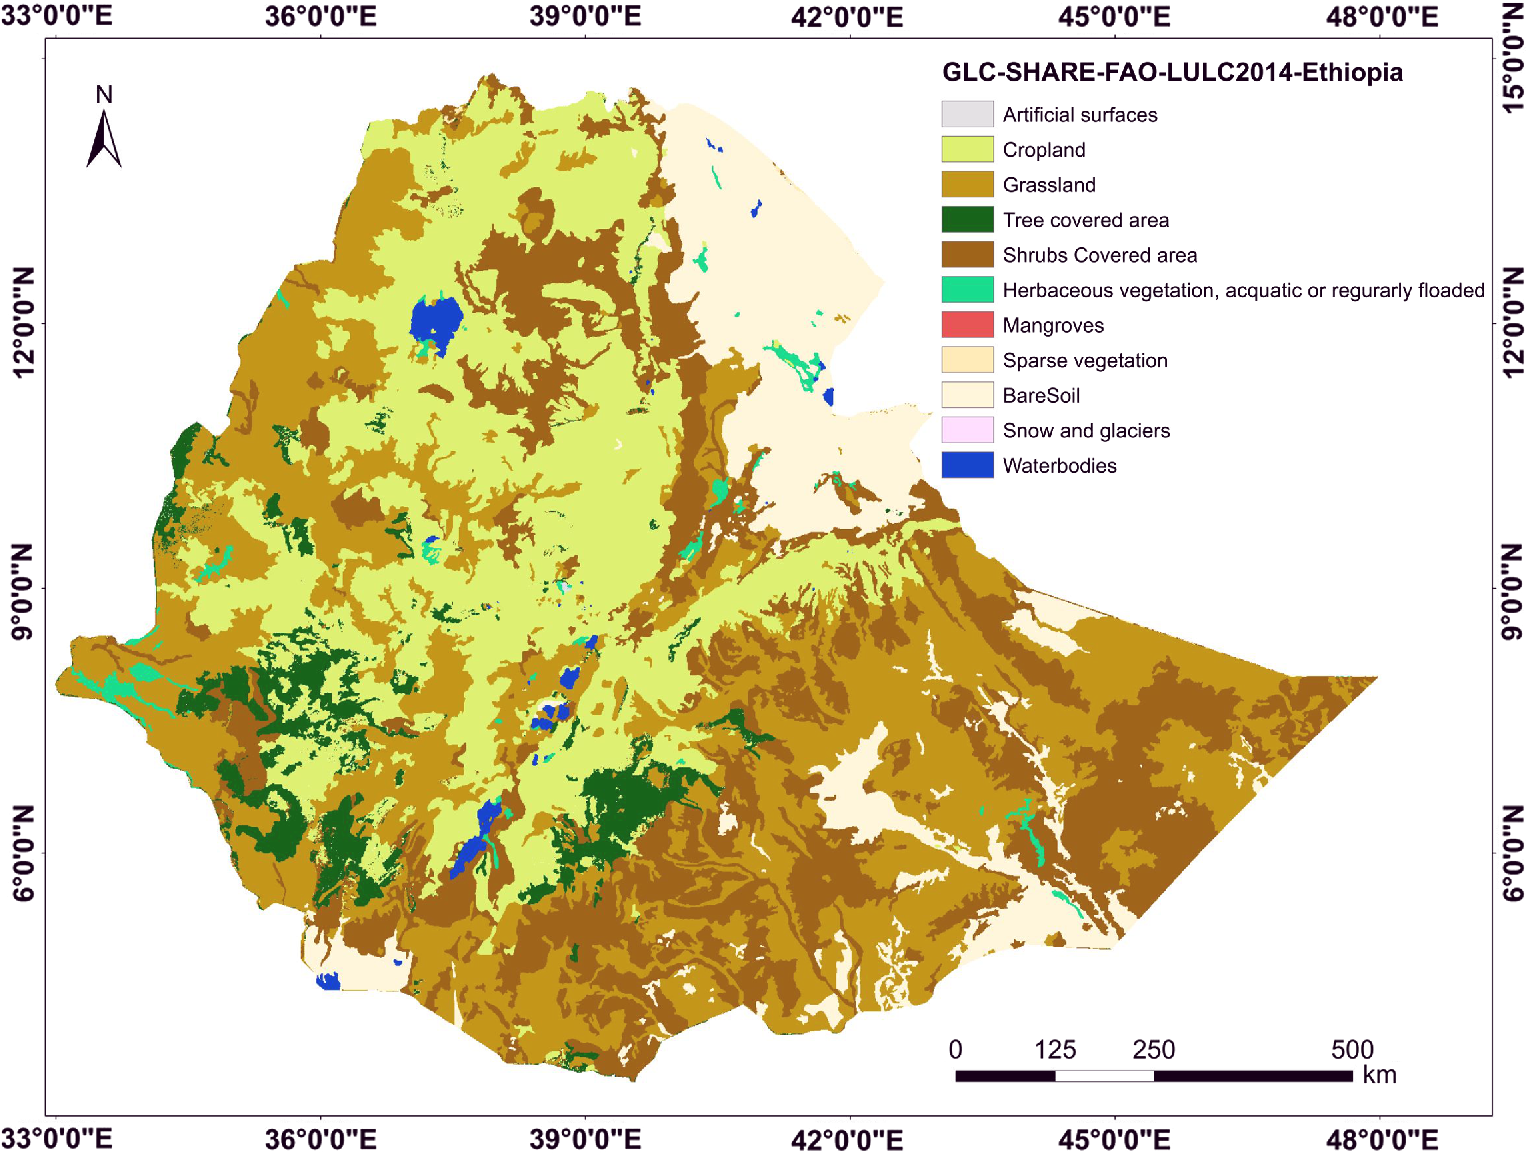 Availability of global and national scale land cover